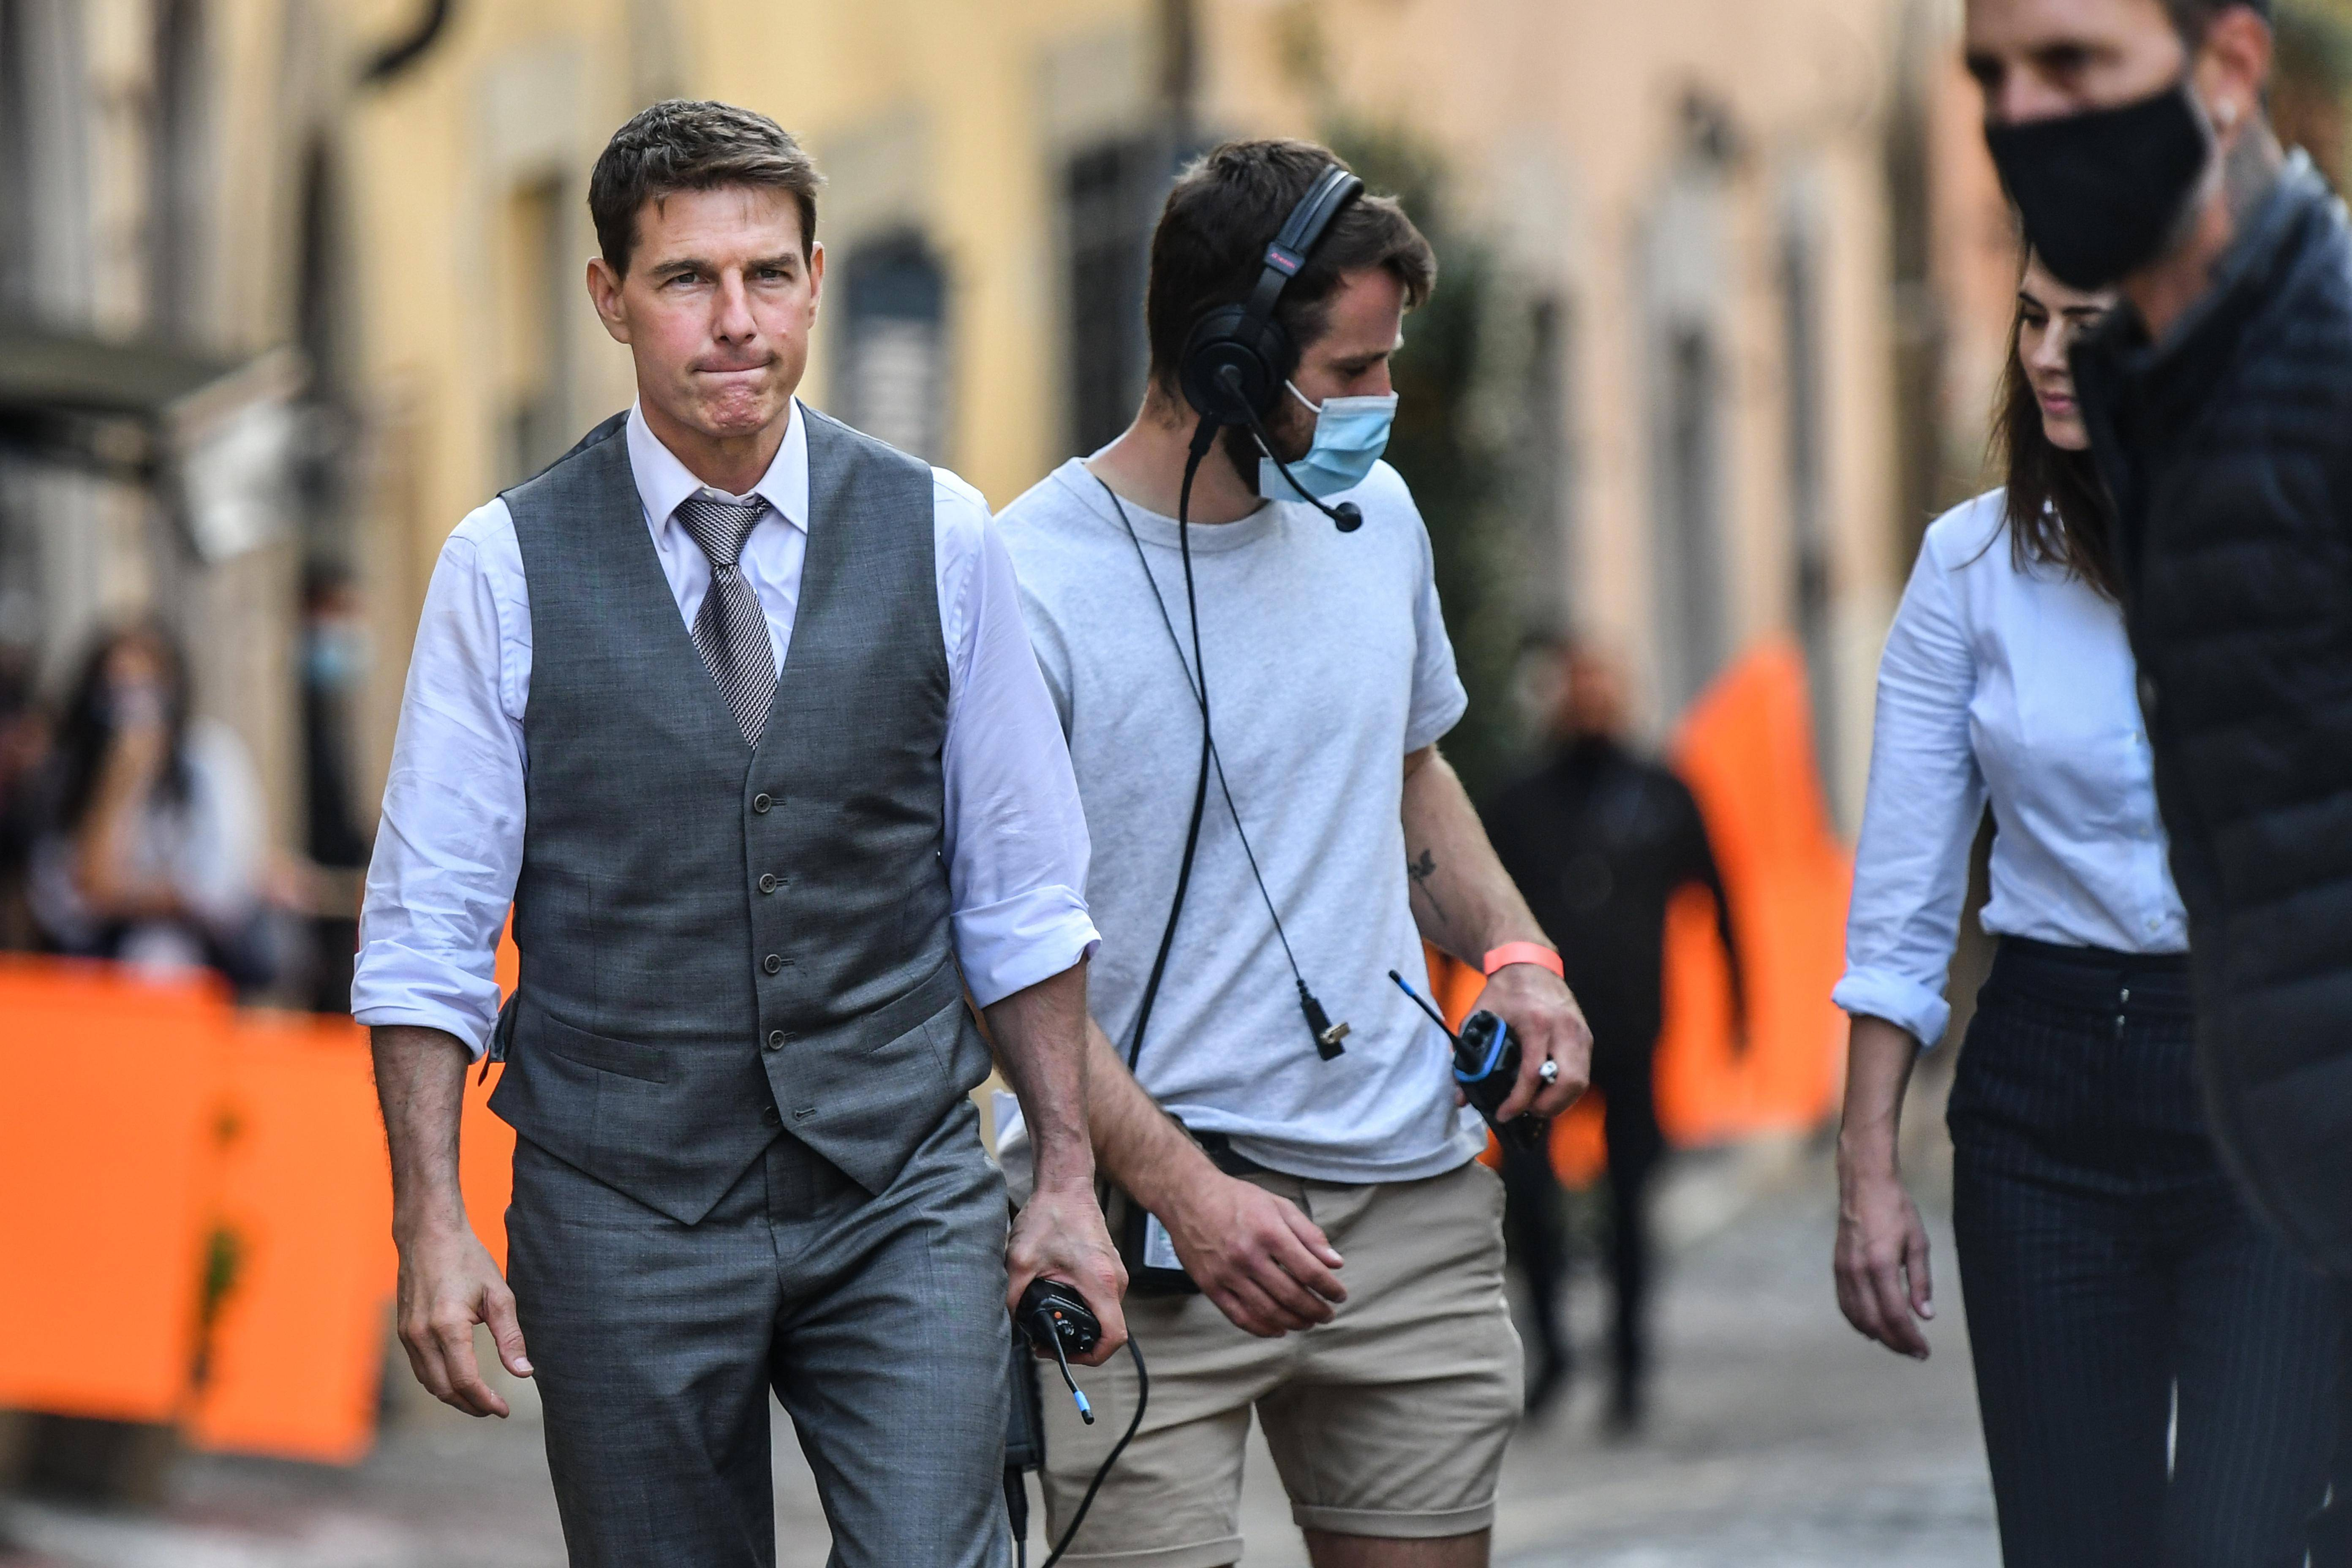 Tom Cruise to shoot in Dubai soon, buys Covid-secure robots to patrol MI set